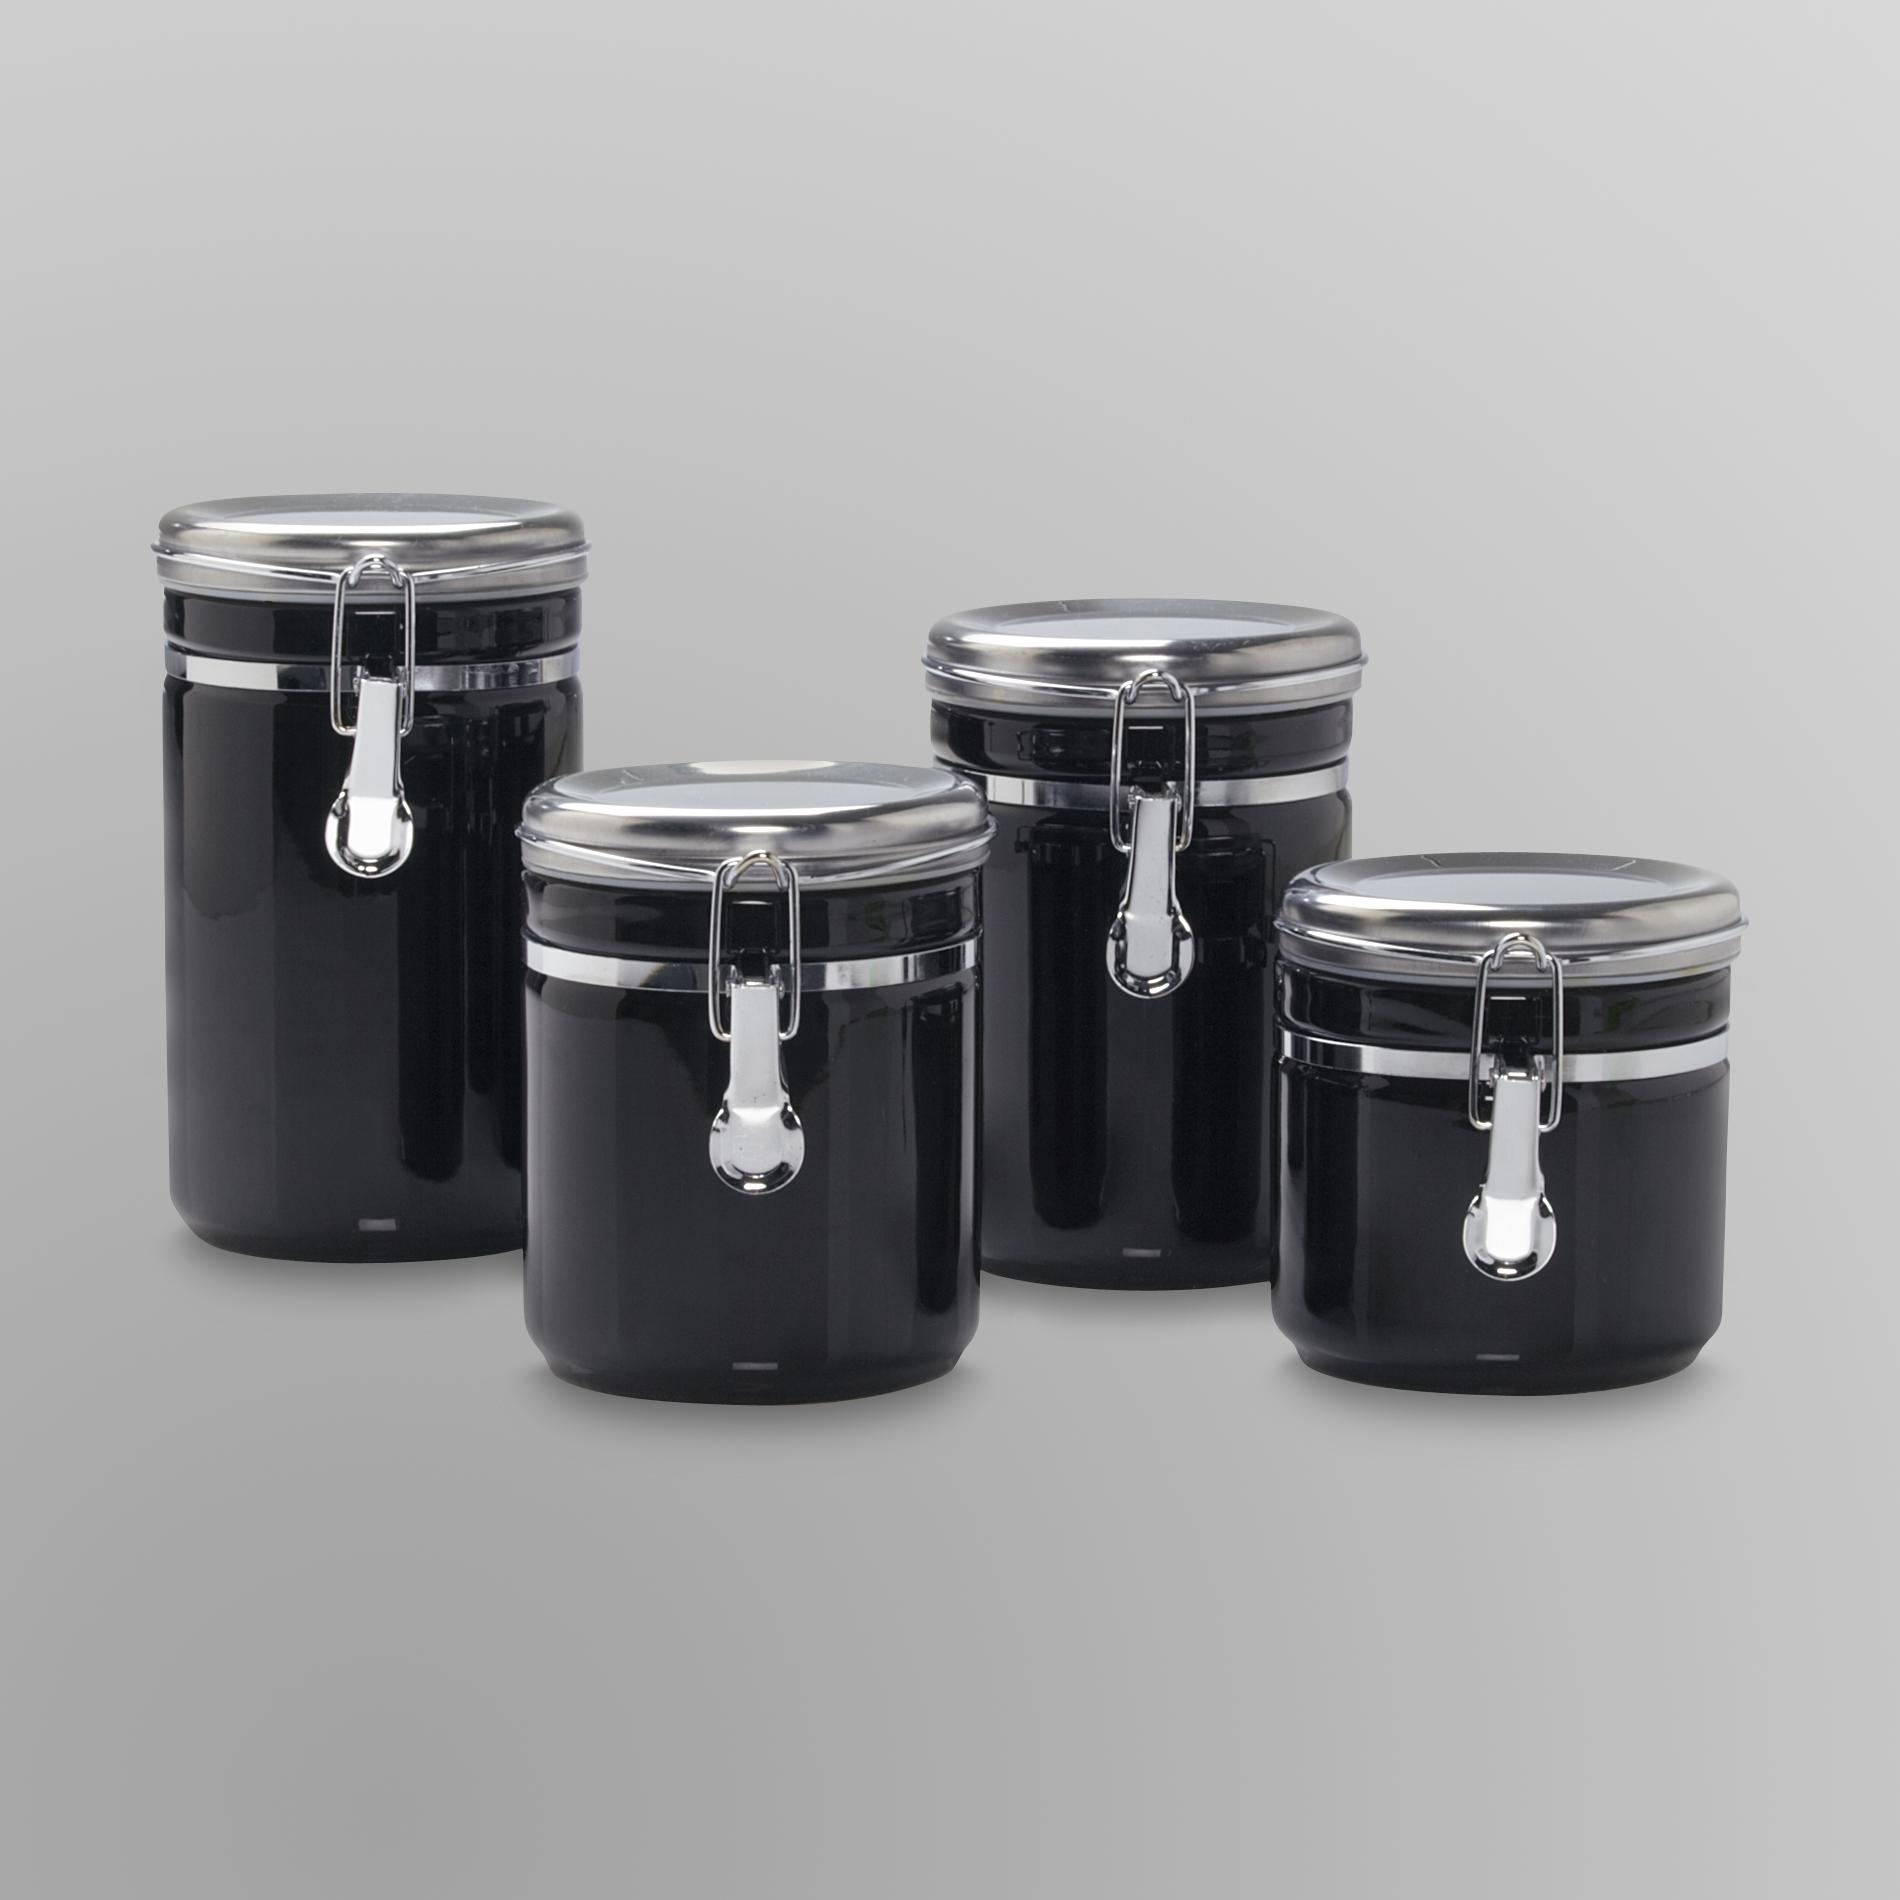 Anchor Hocking 4-Piece Ceramic Canister Set PartNumber: 011W004977869001P KsnValue: 4977869 MfgPartNumber: 03923EH13